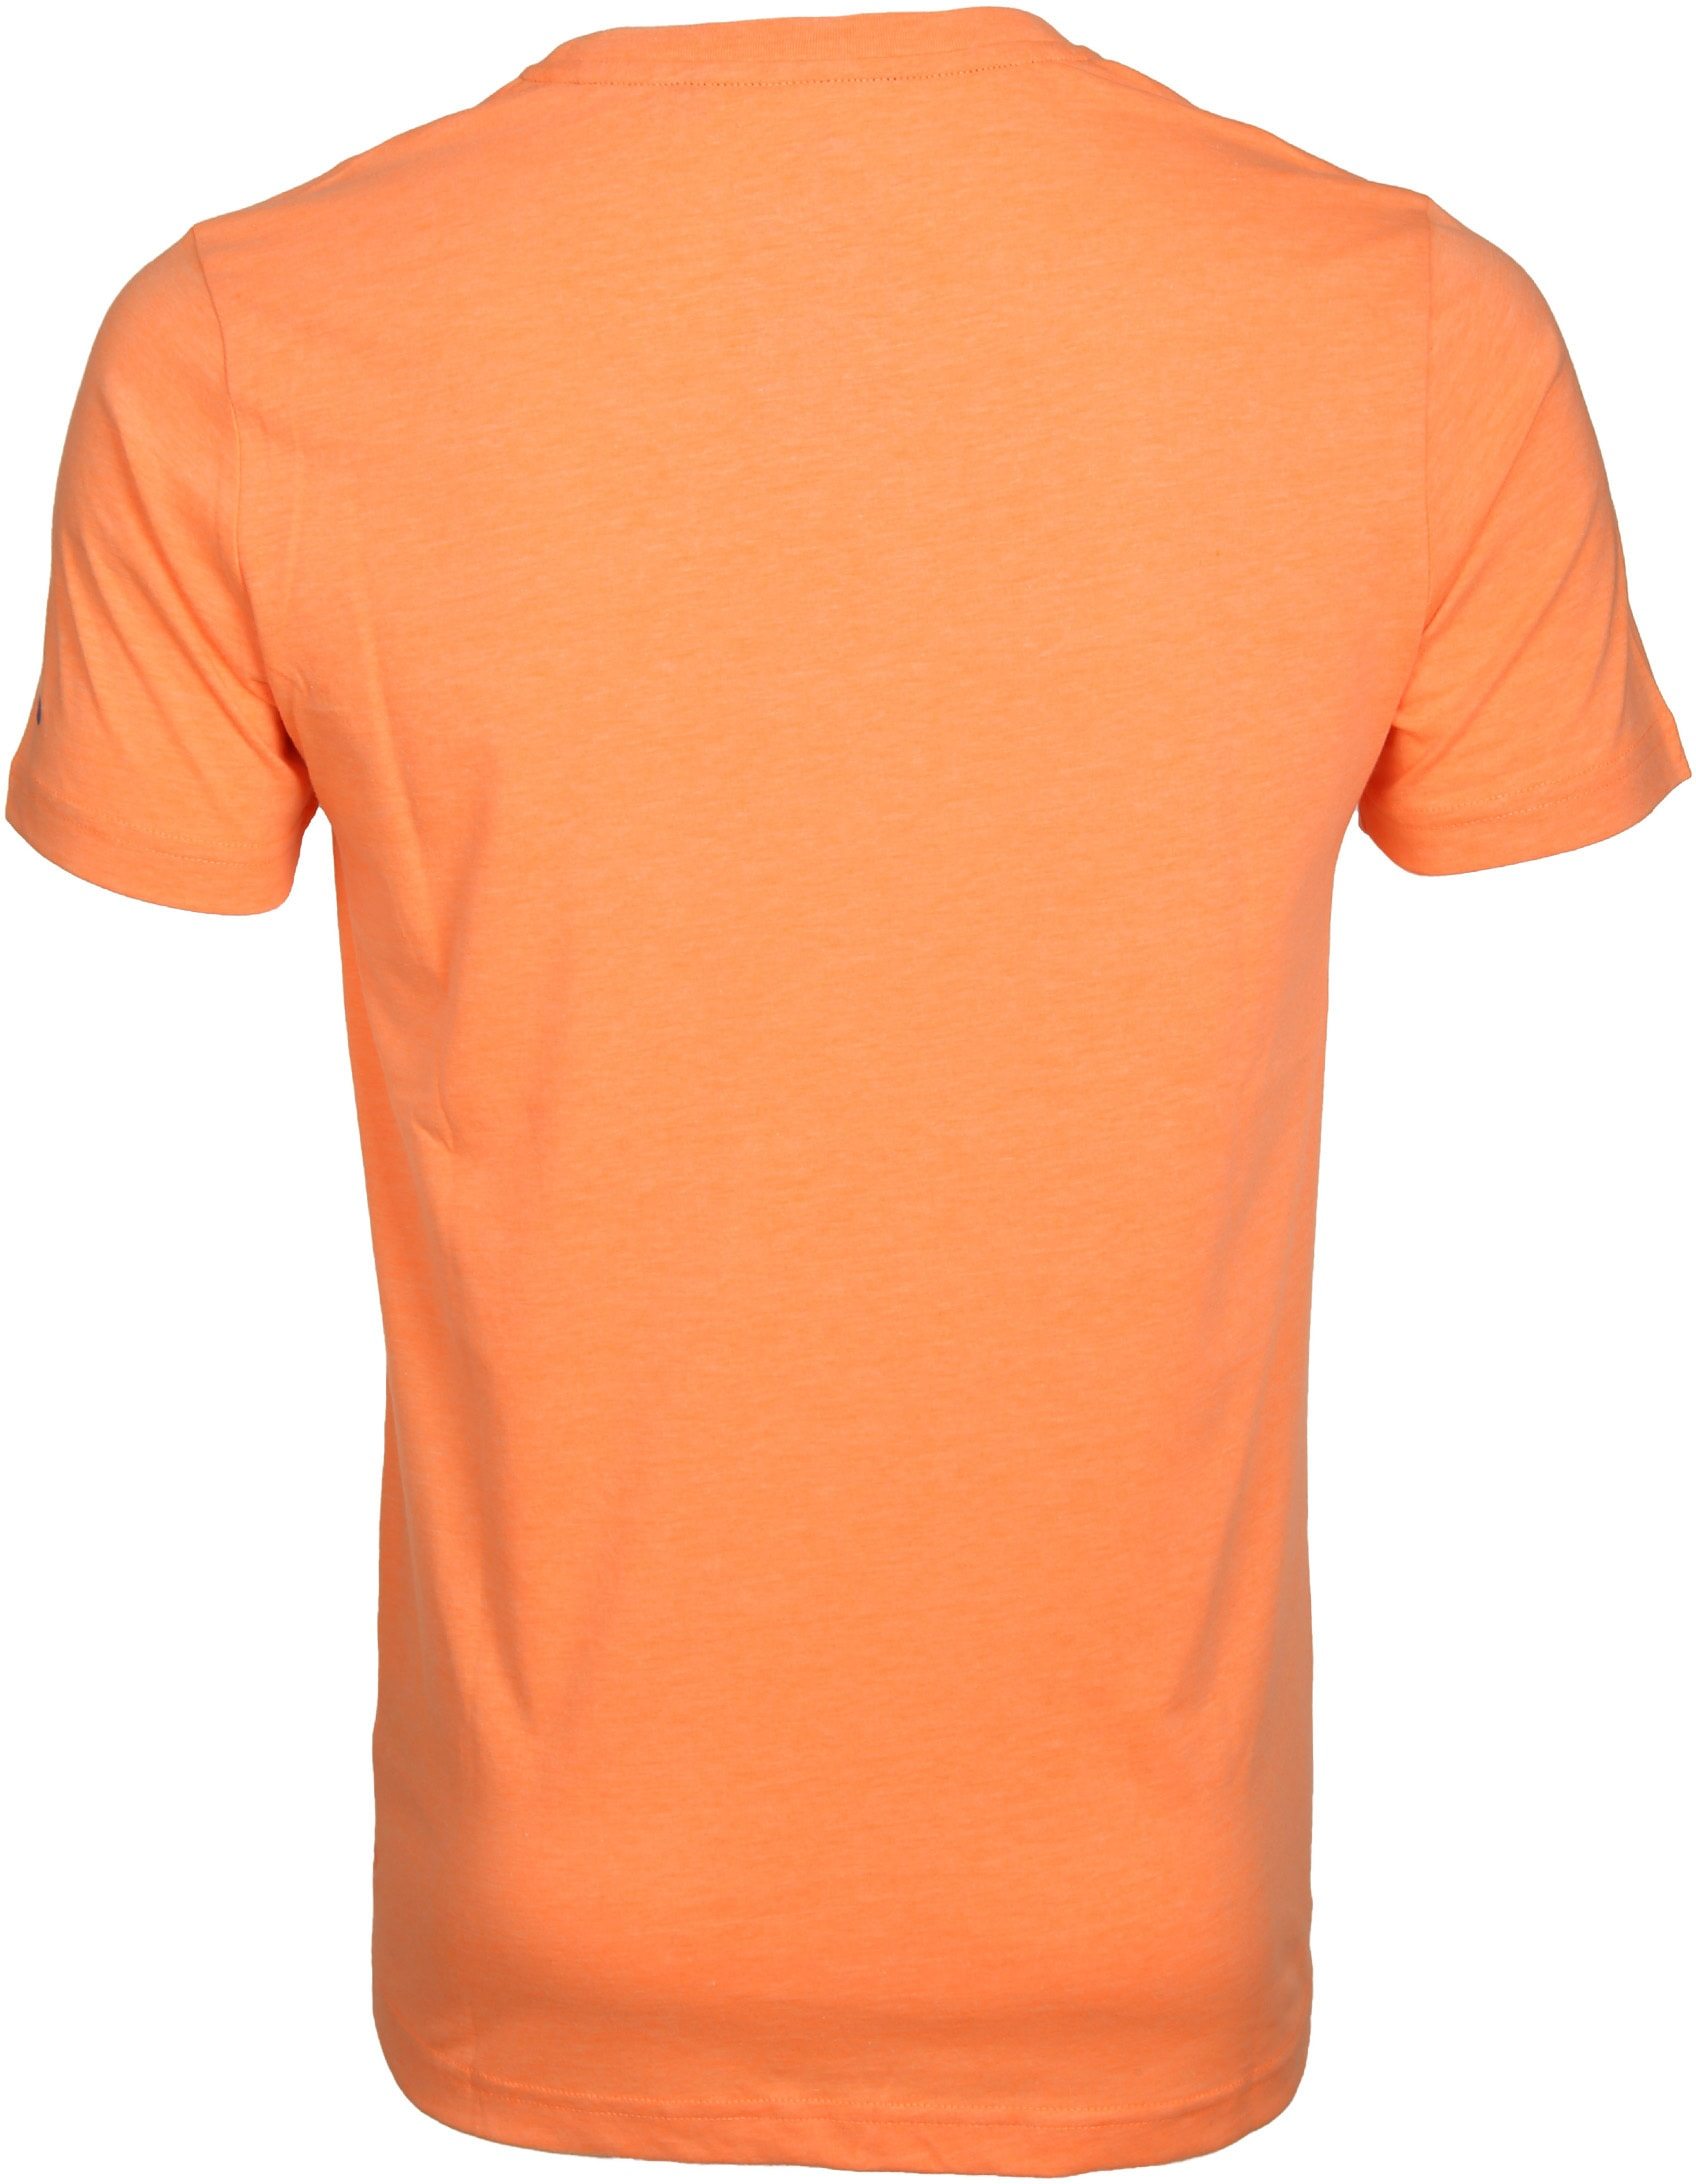 NZA Hapuka T-shirt Neon Orange foto 2